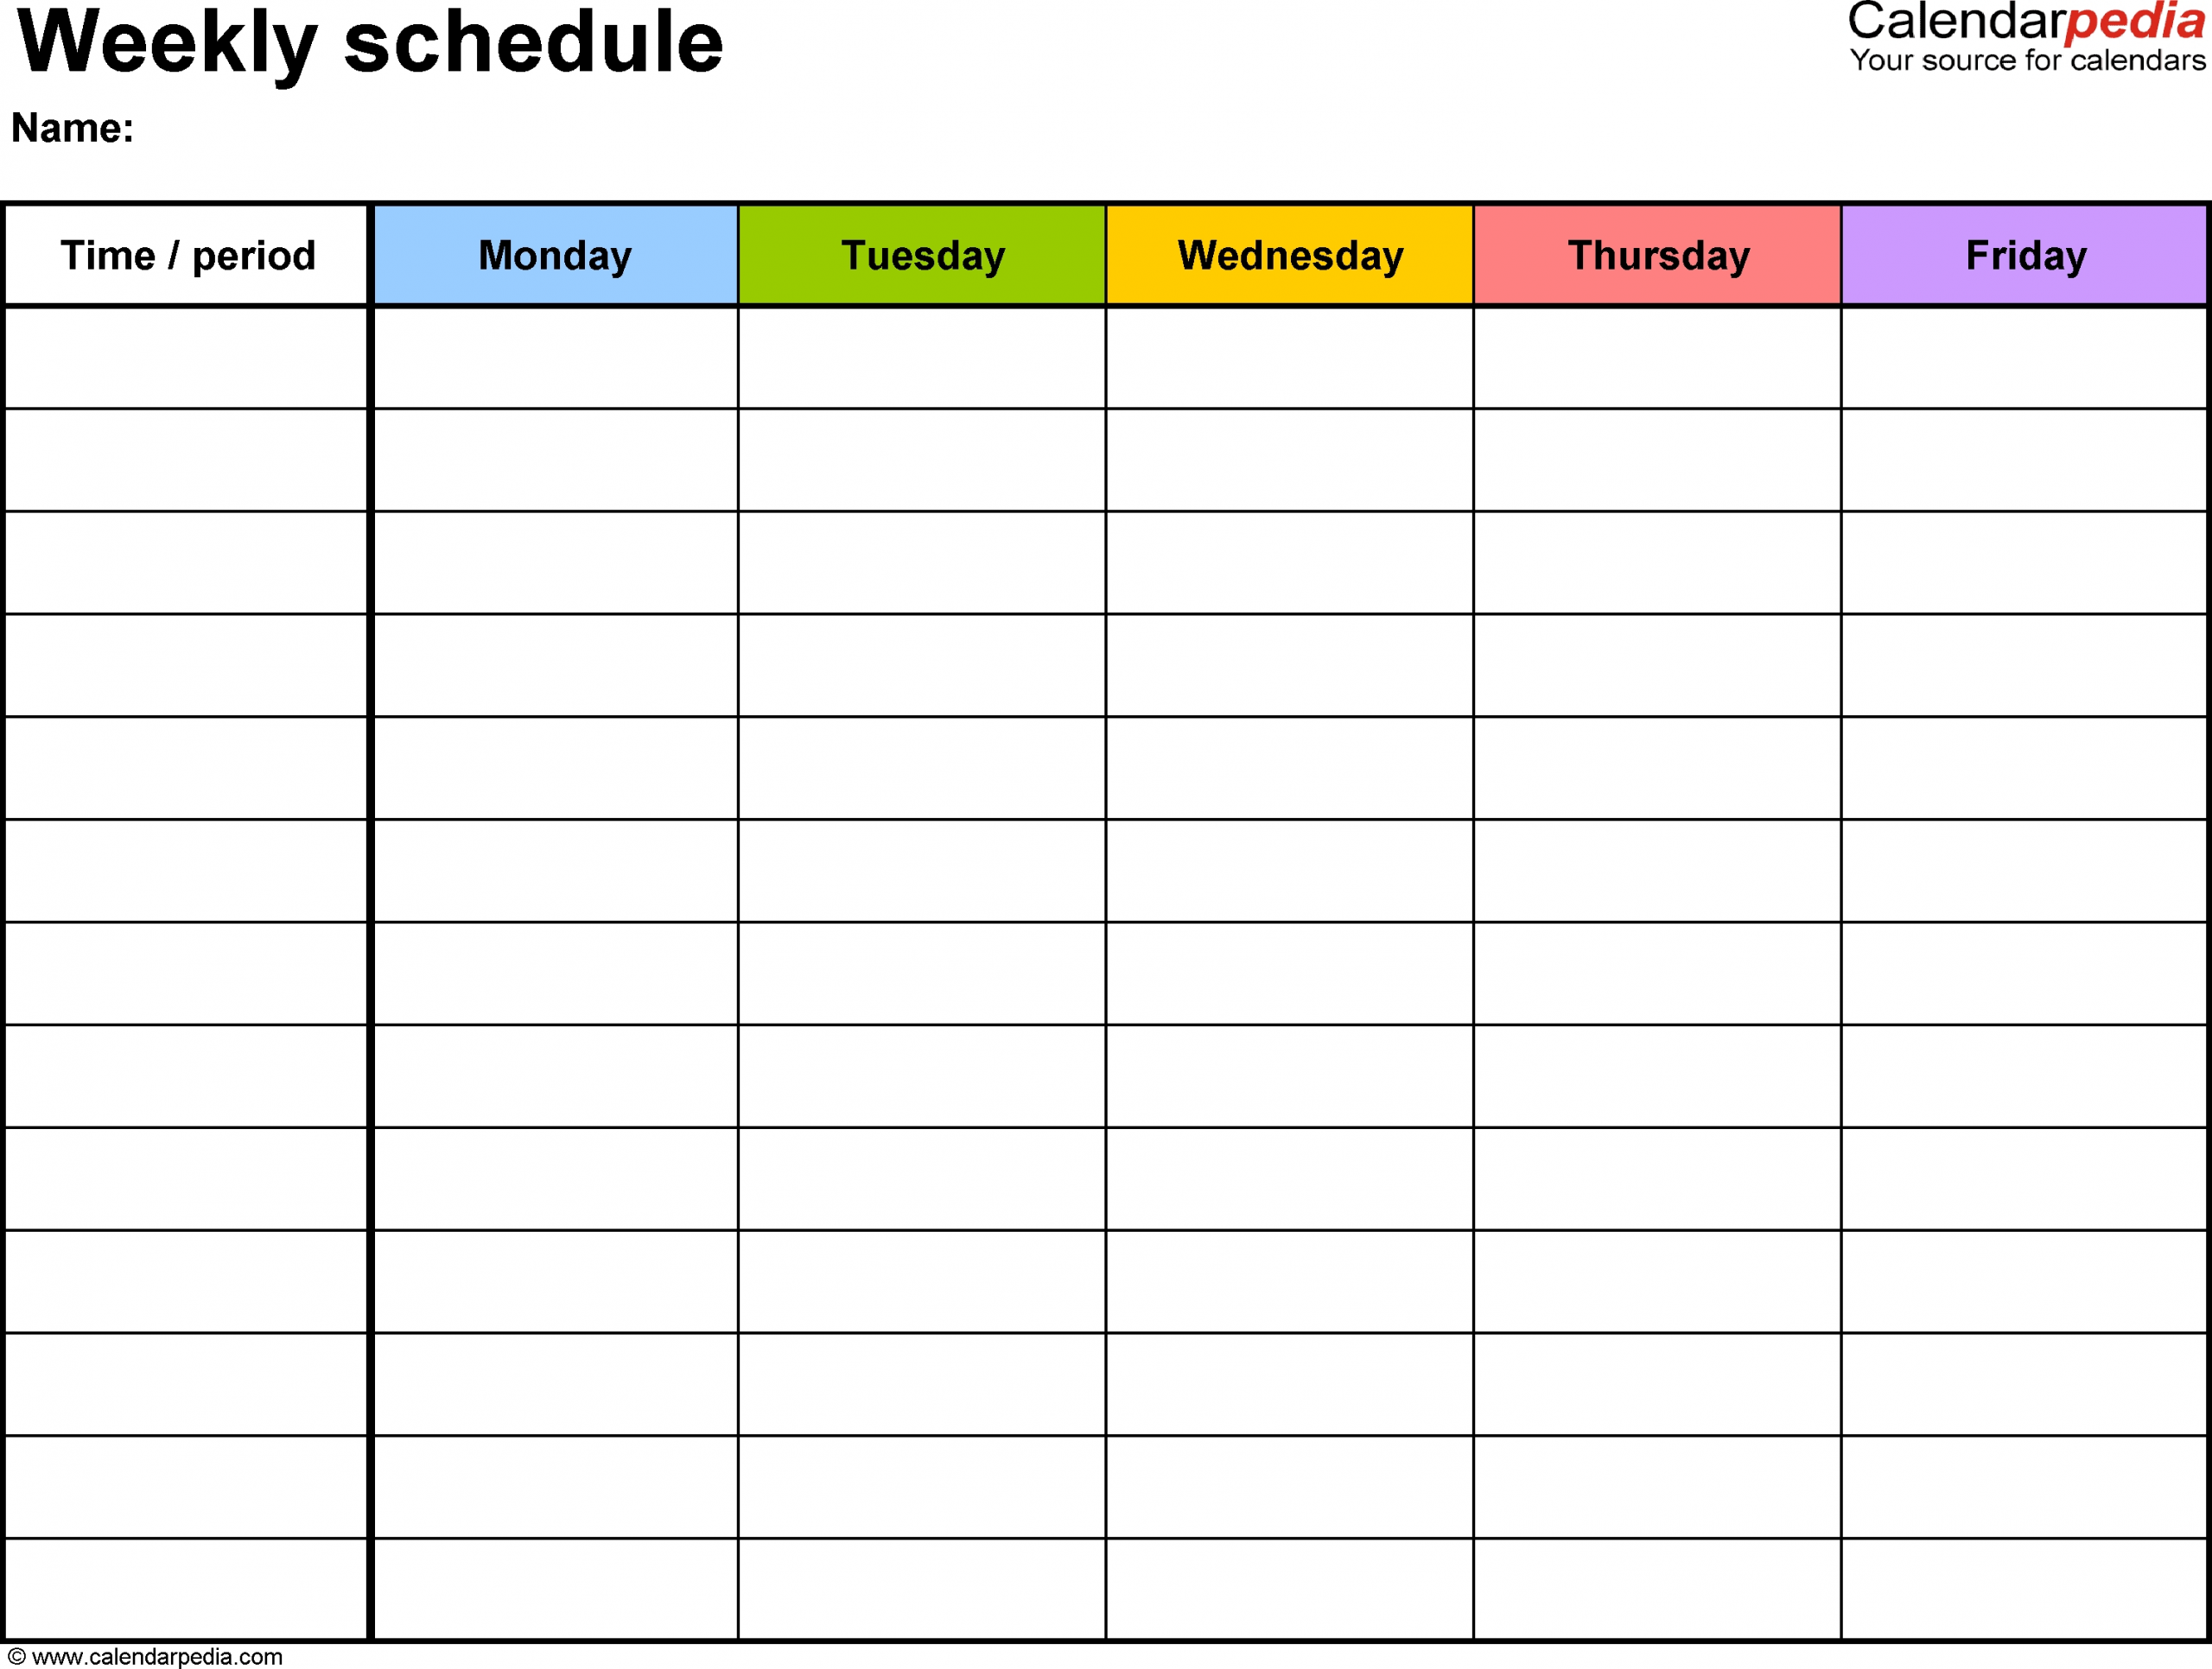 Weekly Calendar Template Monday To Friday | Calendar Monday To Friday Schedule